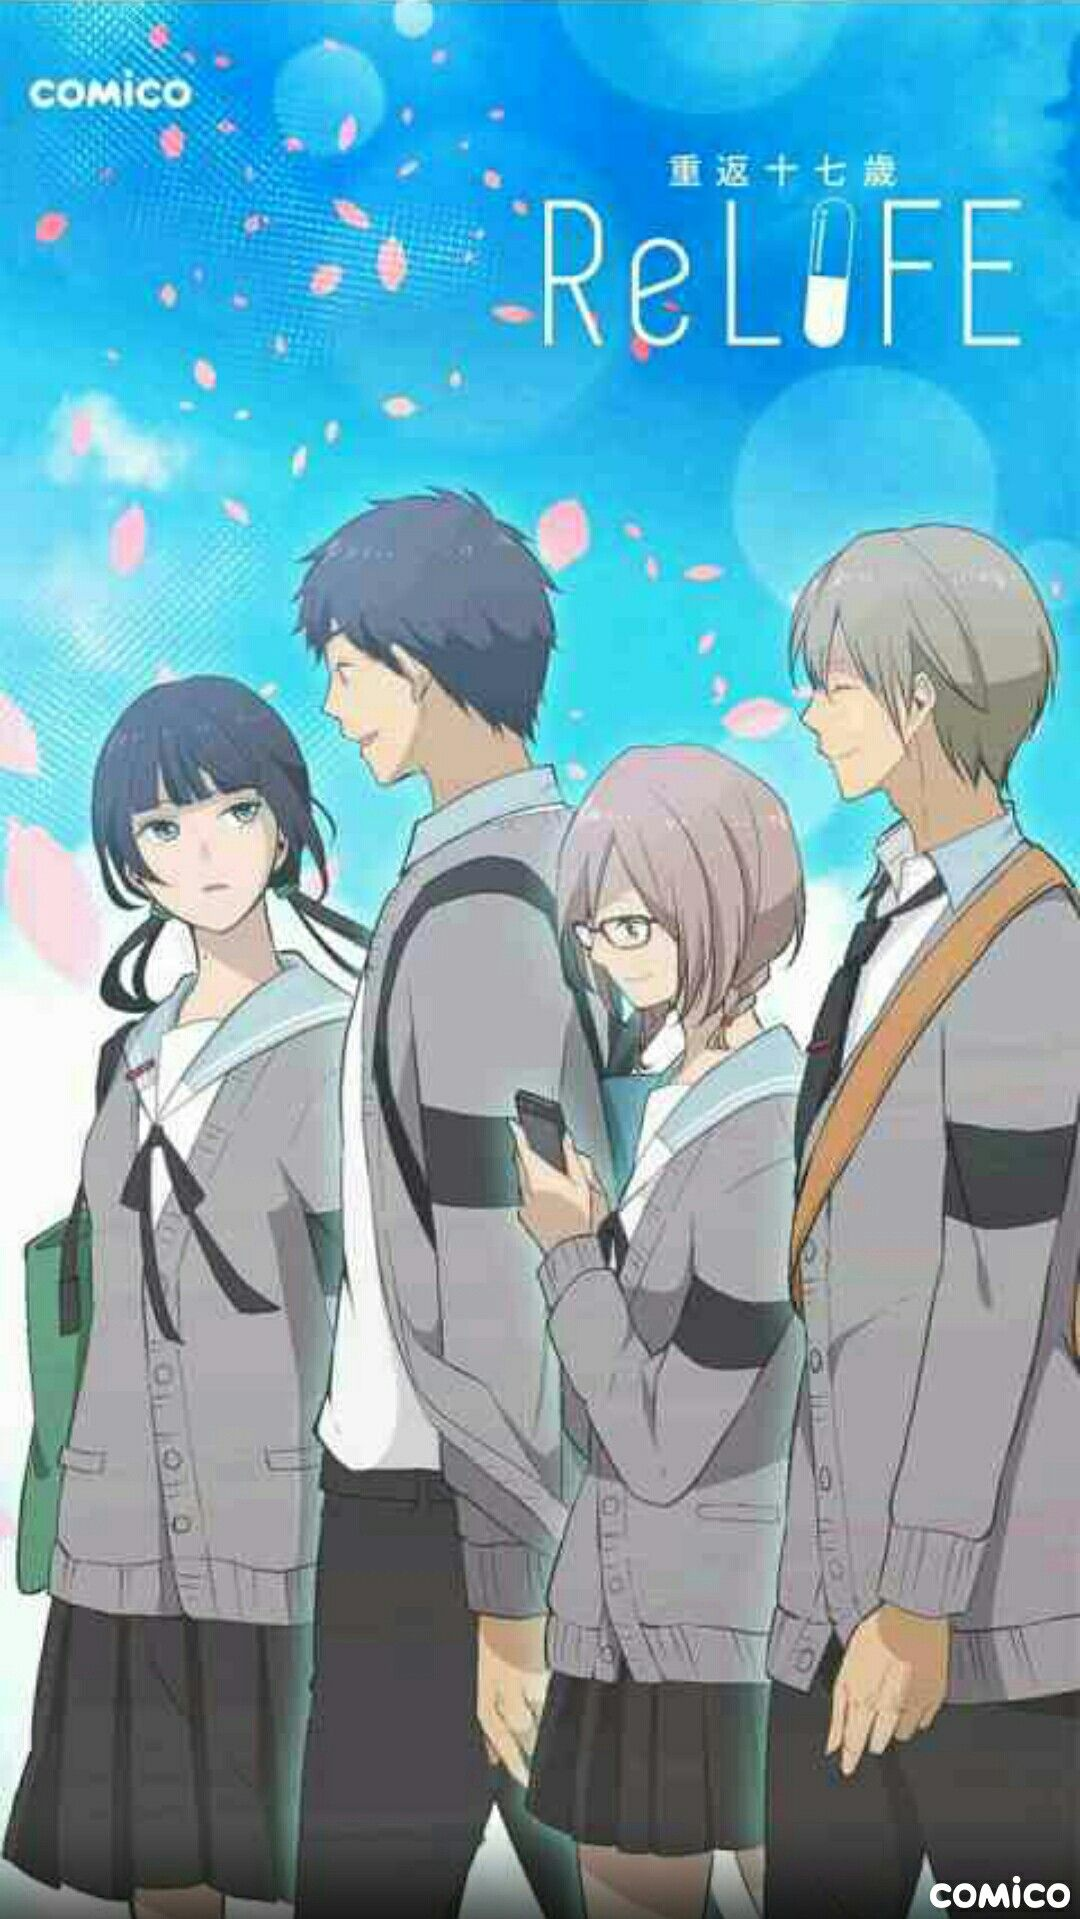 Tomorrow Quotes Wallpaper Hd Relife Anime Pinterest Tyxgb76aj Quot Gt This Anime And An